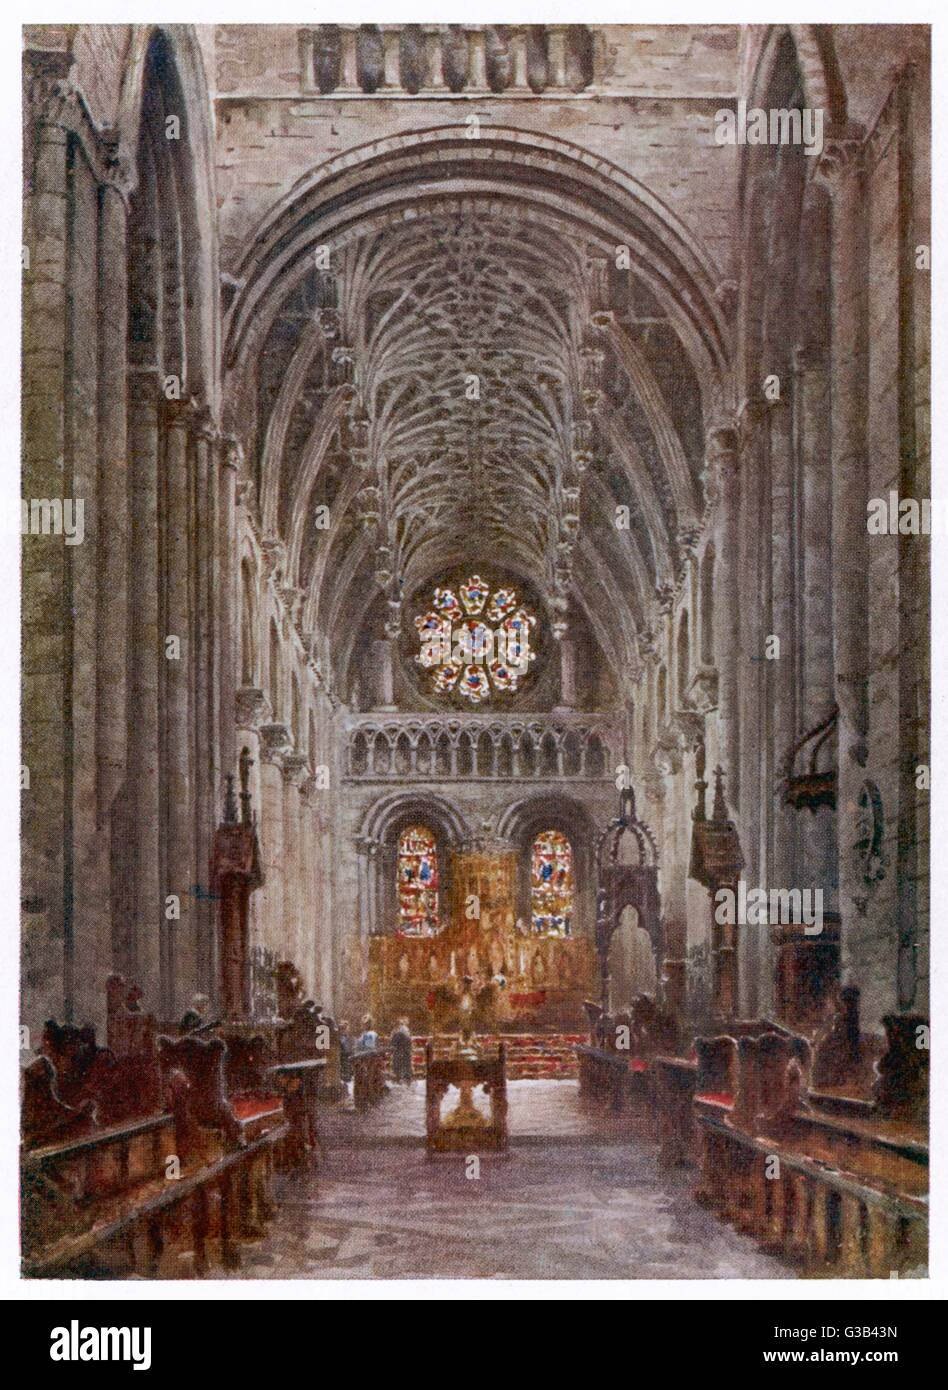 Oxford:  Christ Church College Cathedral nave       Date: 1905 - Stock Image